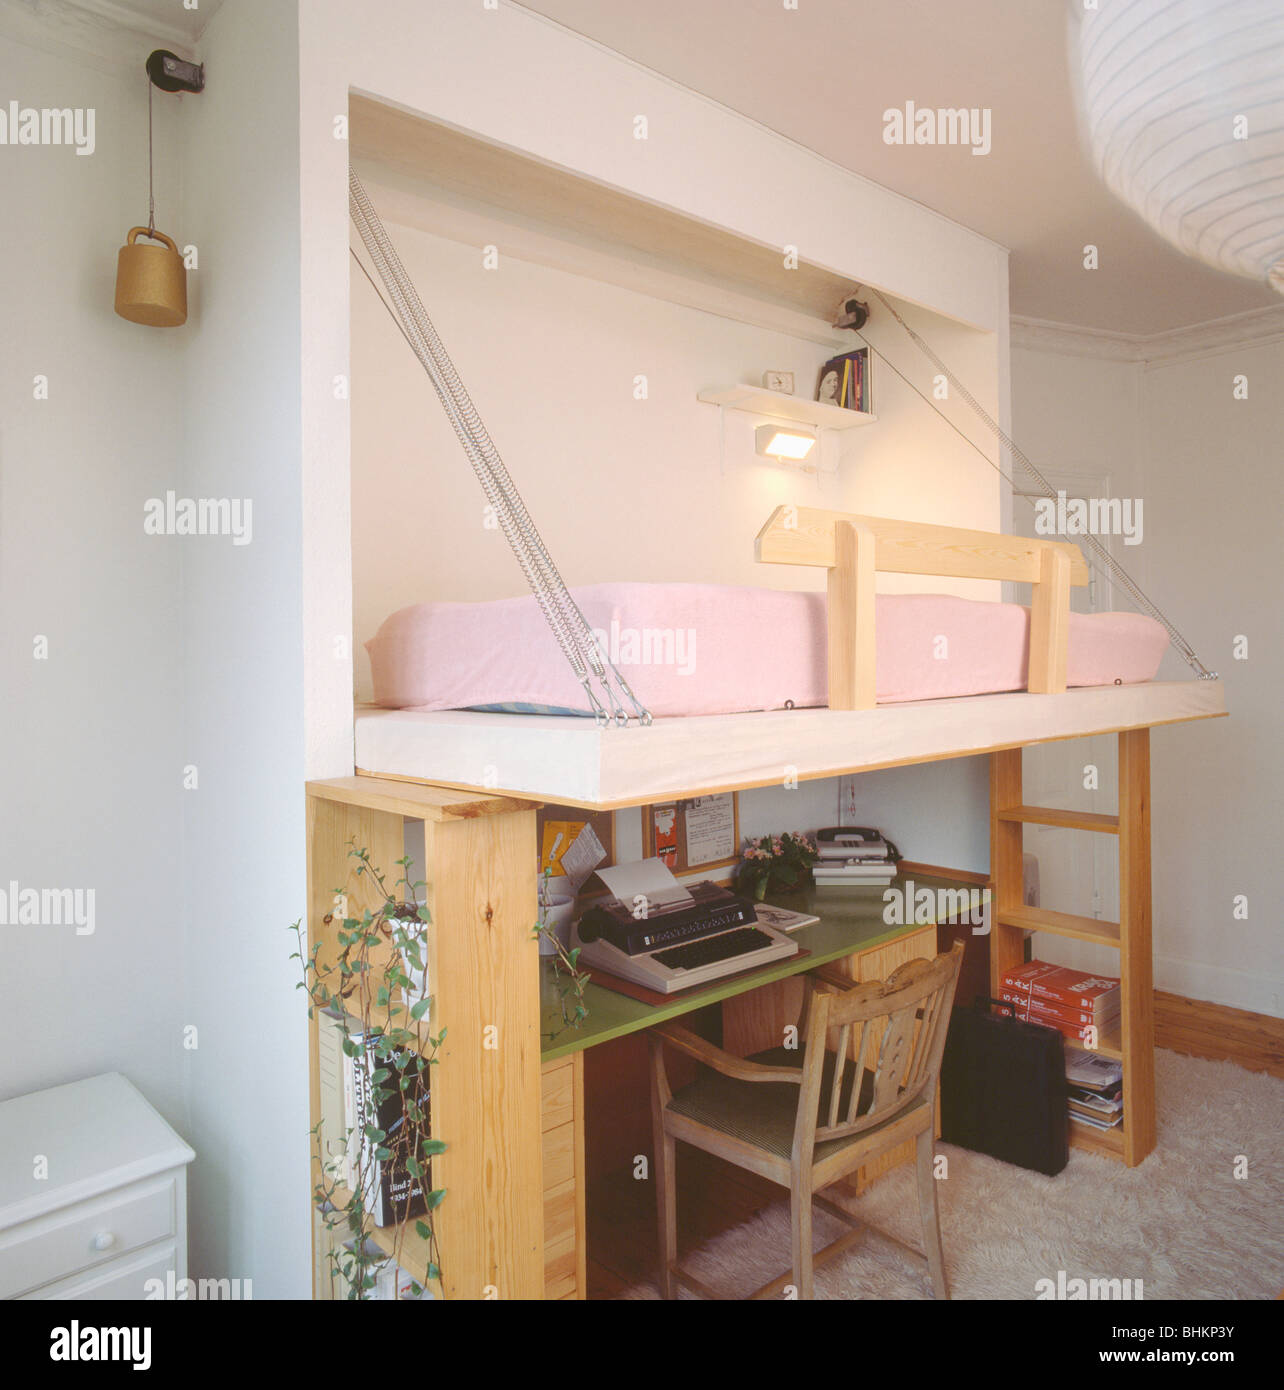 Pull Down Bed Above Desk And Chair In Bedroom In Economy Style Studentu0027s  Studio Apartment